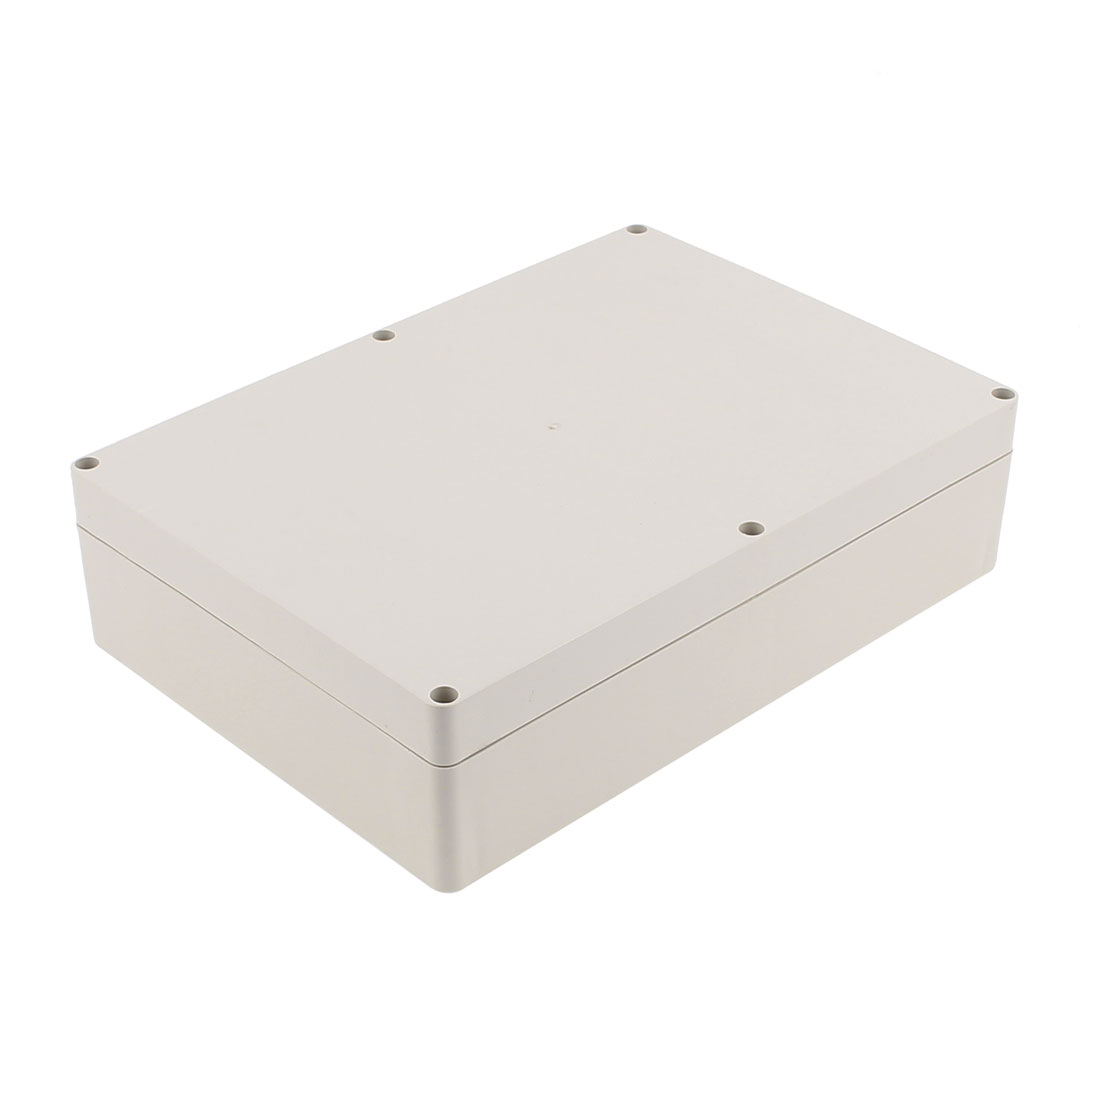 263 x 185 x 70mm Dustproof IP65 Junction Box Terminal Connecting Box Enclosure